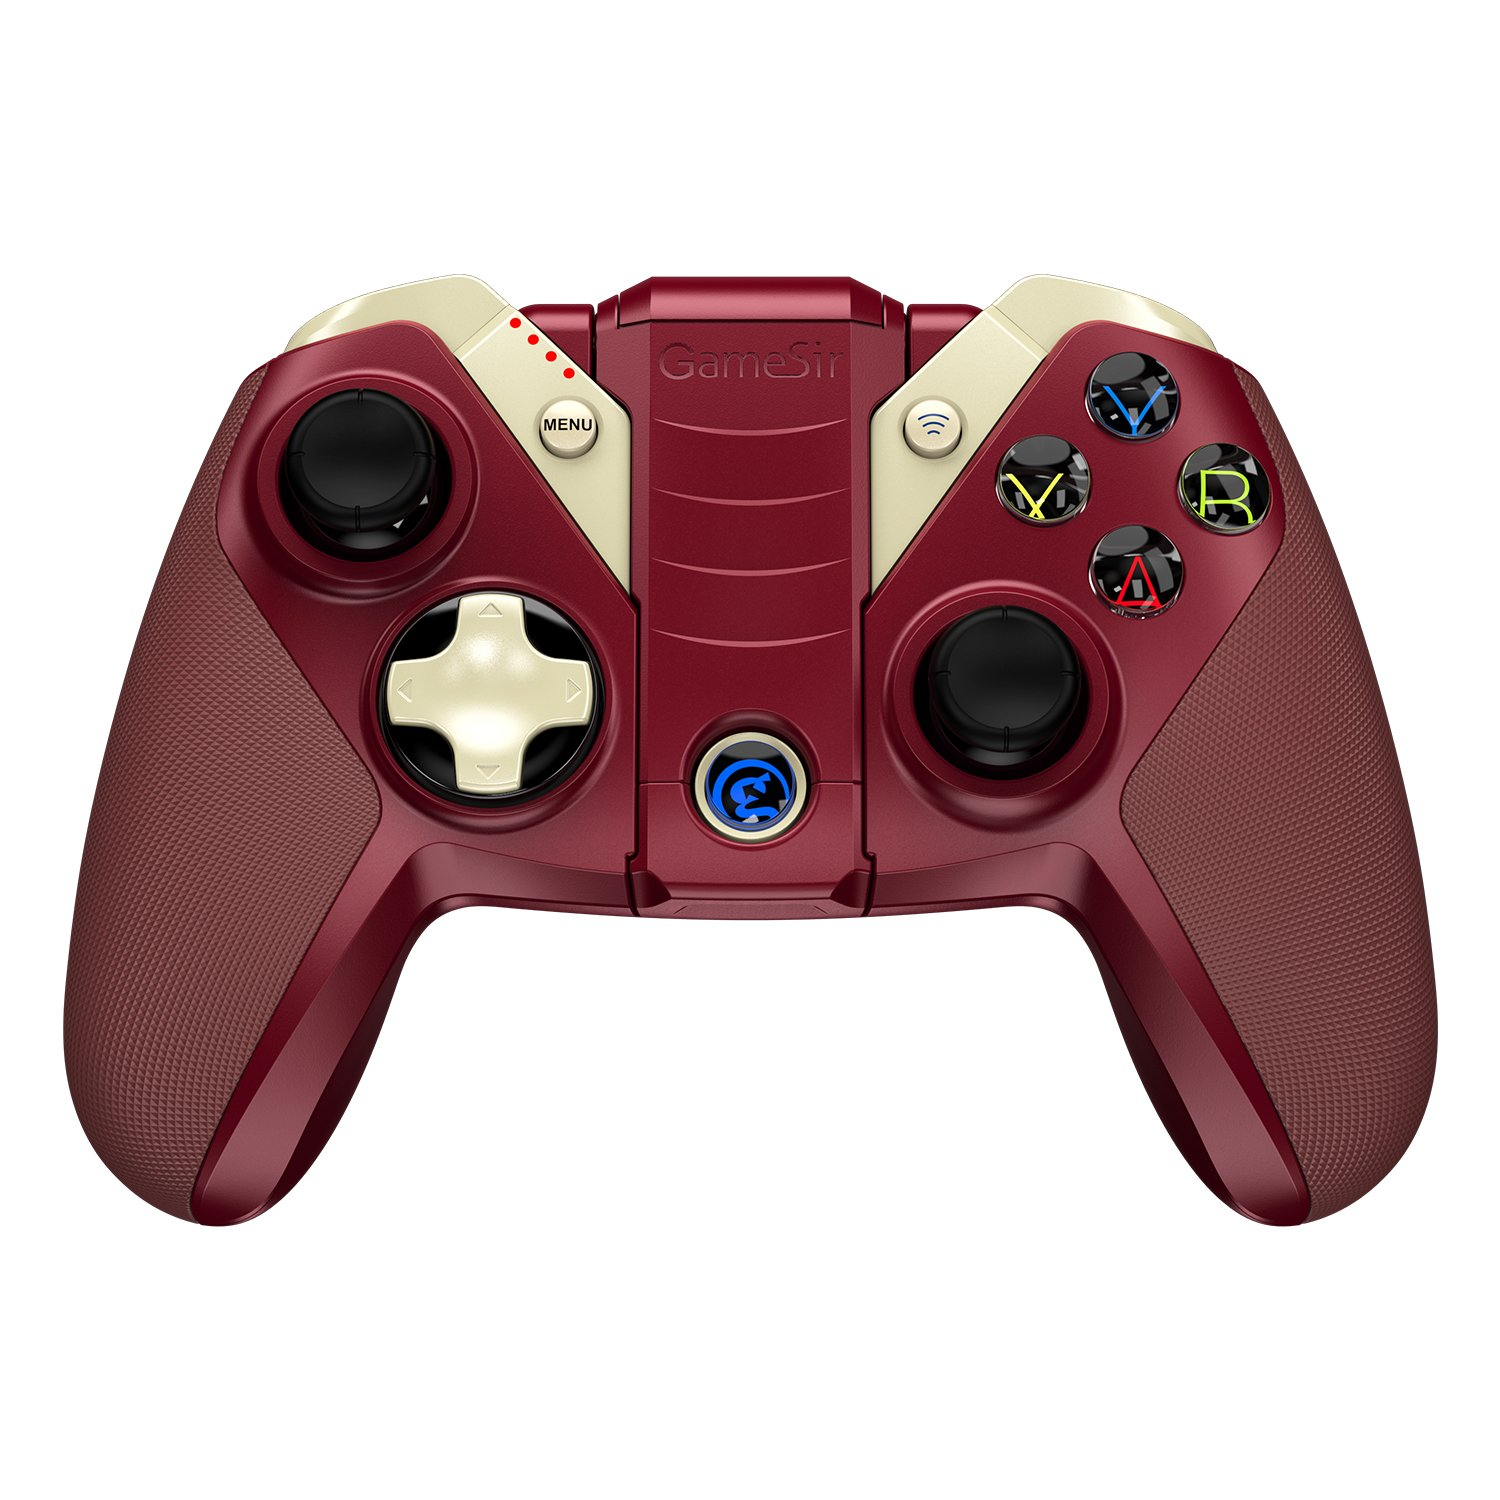 iPhone Ipad Tello Drone Mac Red GameSir M2 MFI Wireless Gamepad iOS Gaming Controller Compatible for Apple TV iPod Touch